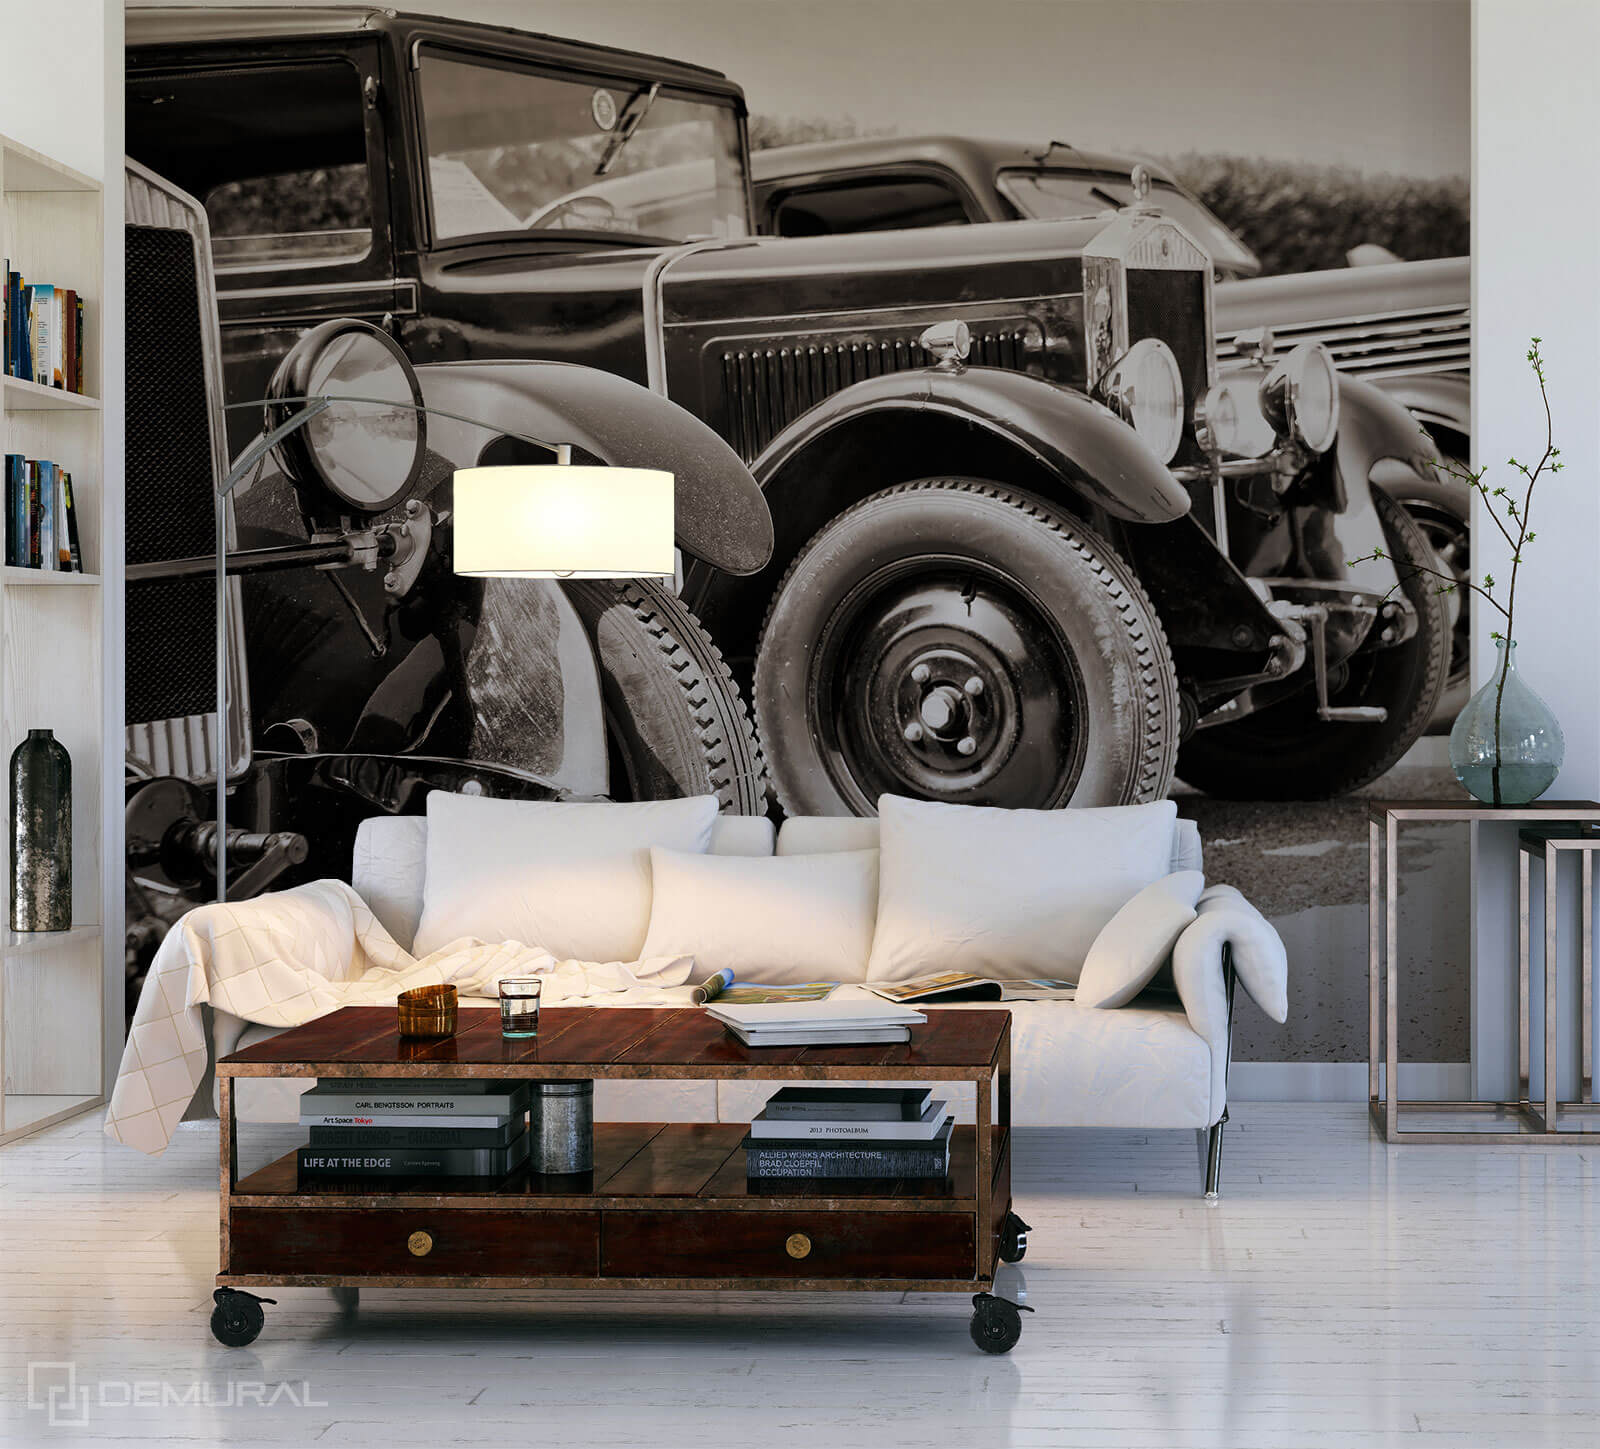 Photo wallpaper Antique cars - Photo wallpaper car - Demural